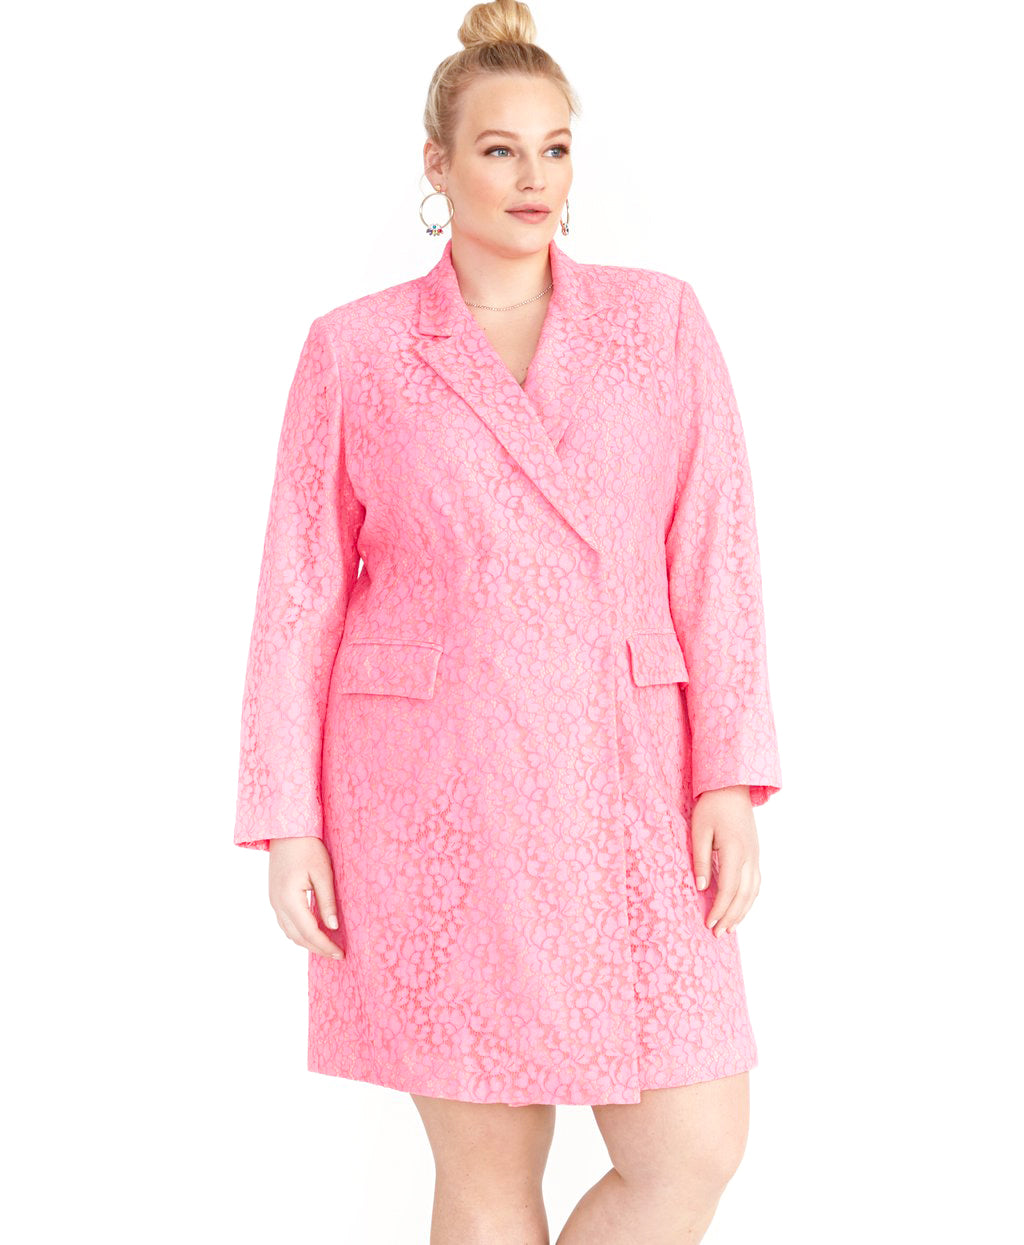 Darla Lace Blazer Dress | Darla Lace Blazer Dress